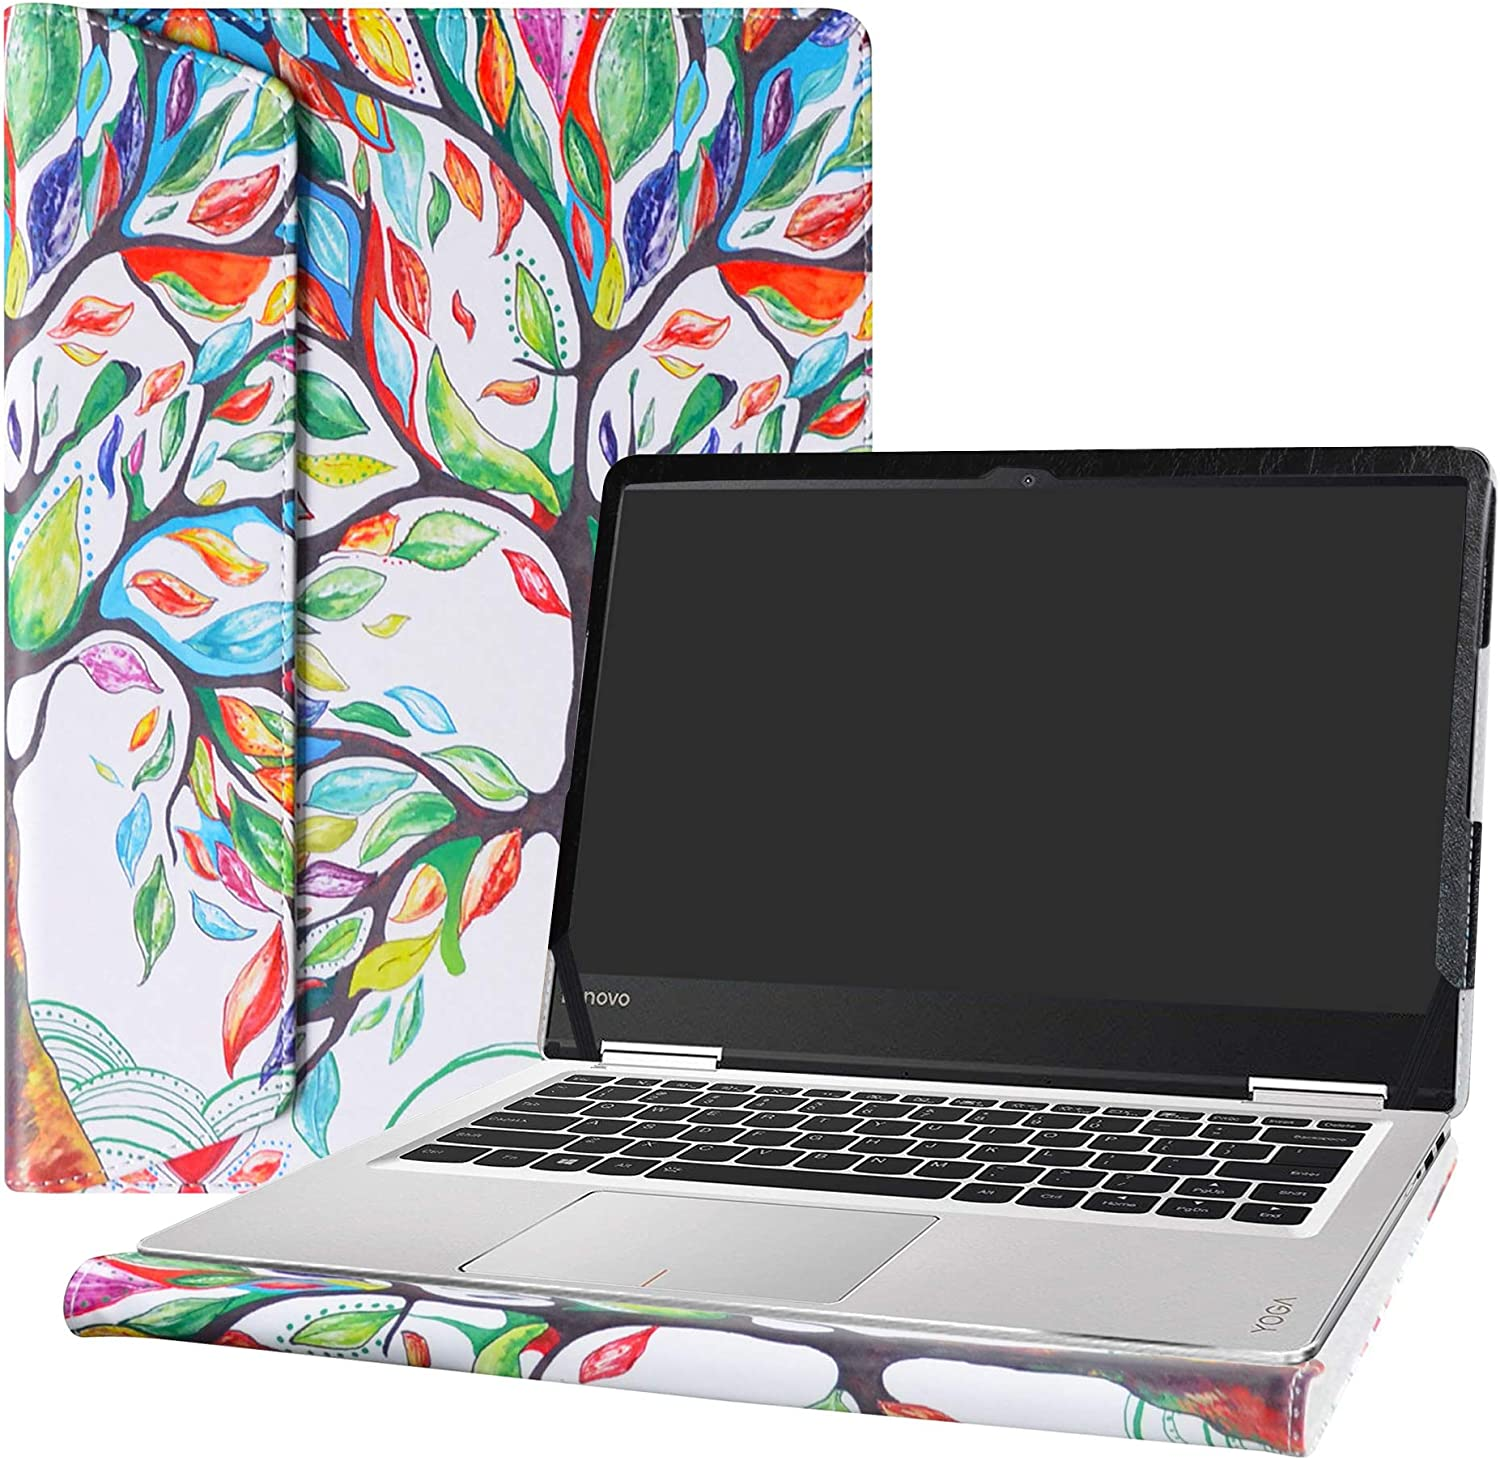 """Alapmk Protective Case Cover for 14"""" Lenovo Yoga 710 14 710-14ISK 710-14IKB & ThinkBook 14s 14s-IWL 14s-IML Laptop(Note:Not fit Yoga 710 11.6 & 15.6/Yoga 720/Yoga 730 & ThinkBook 14-IML),Love Tree"""